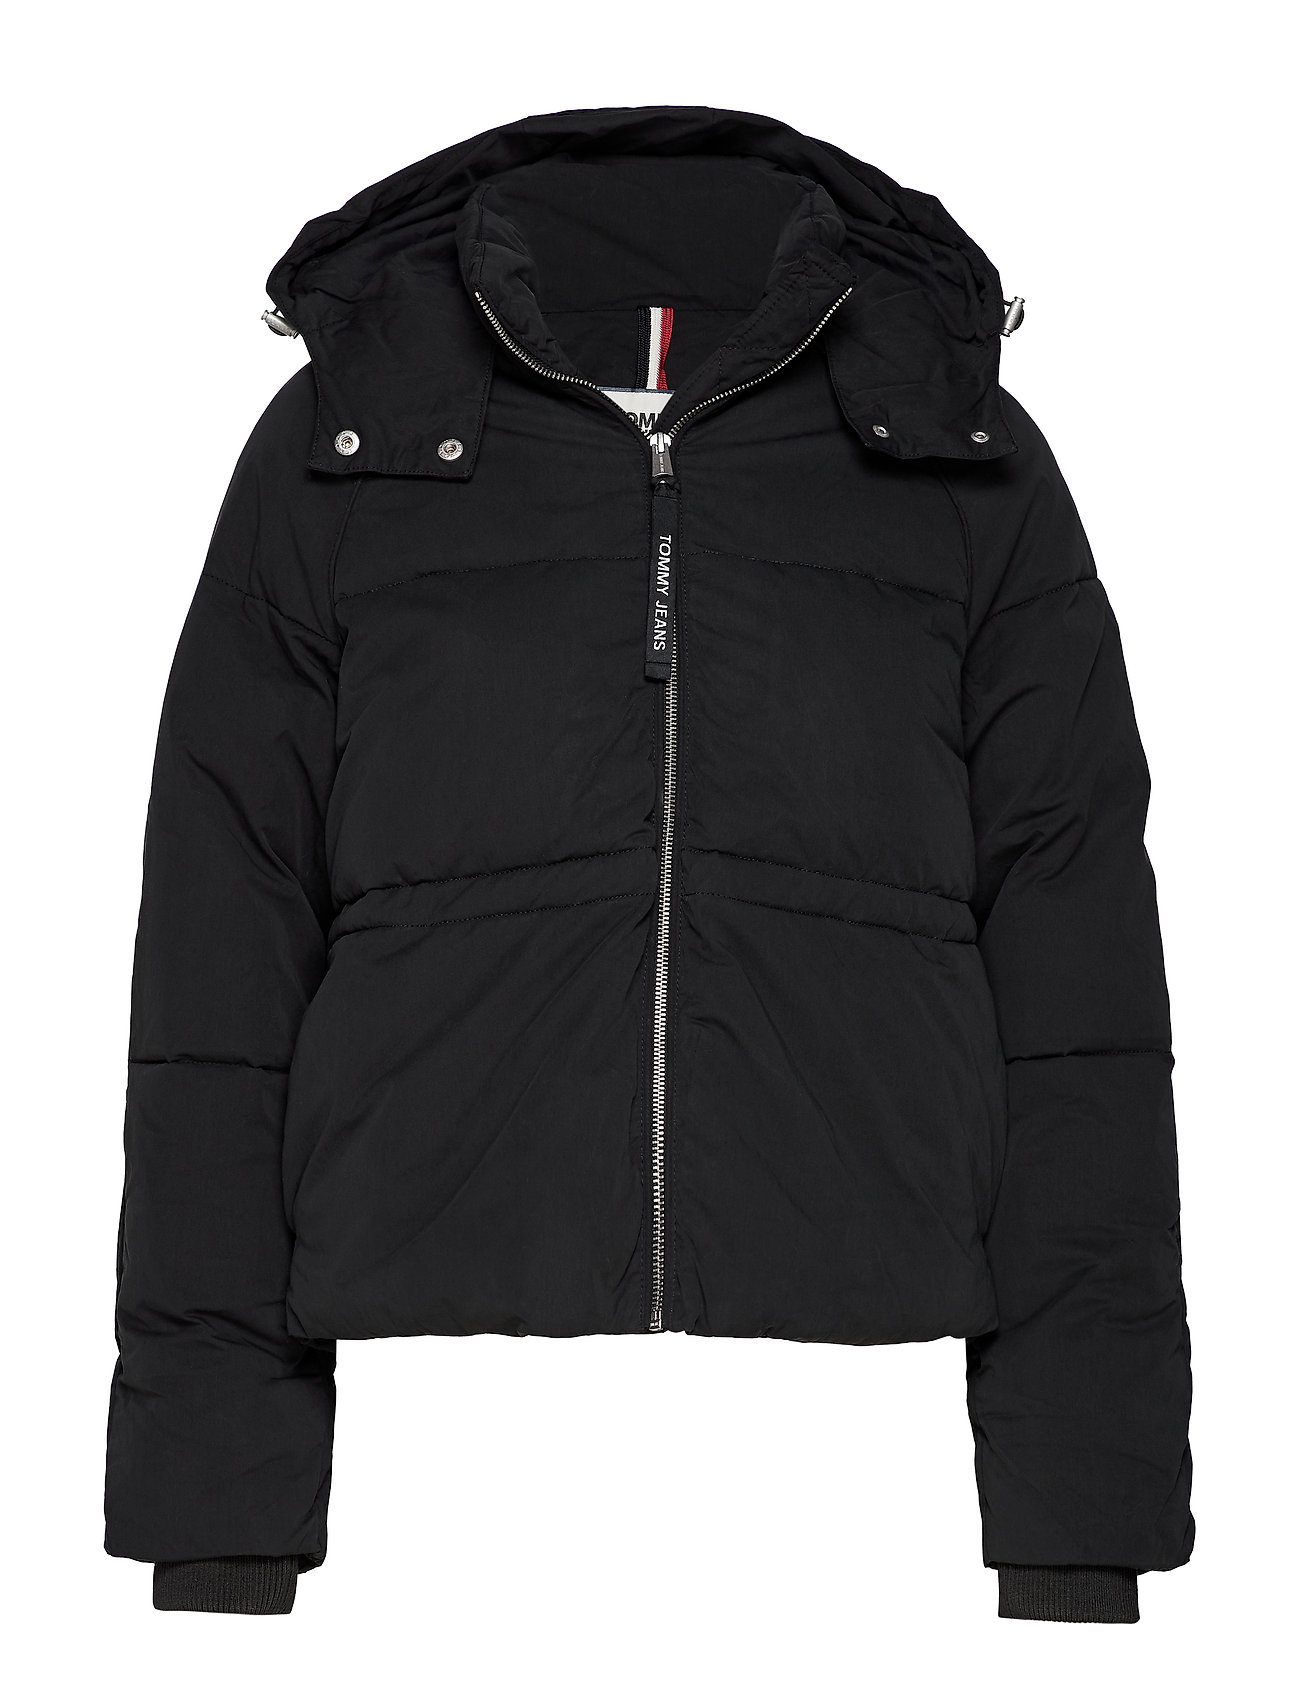 Image of Tjw Tommy Detail Puffa Jacket Foret Jakke Sort Tommy Jeans (3261450947)